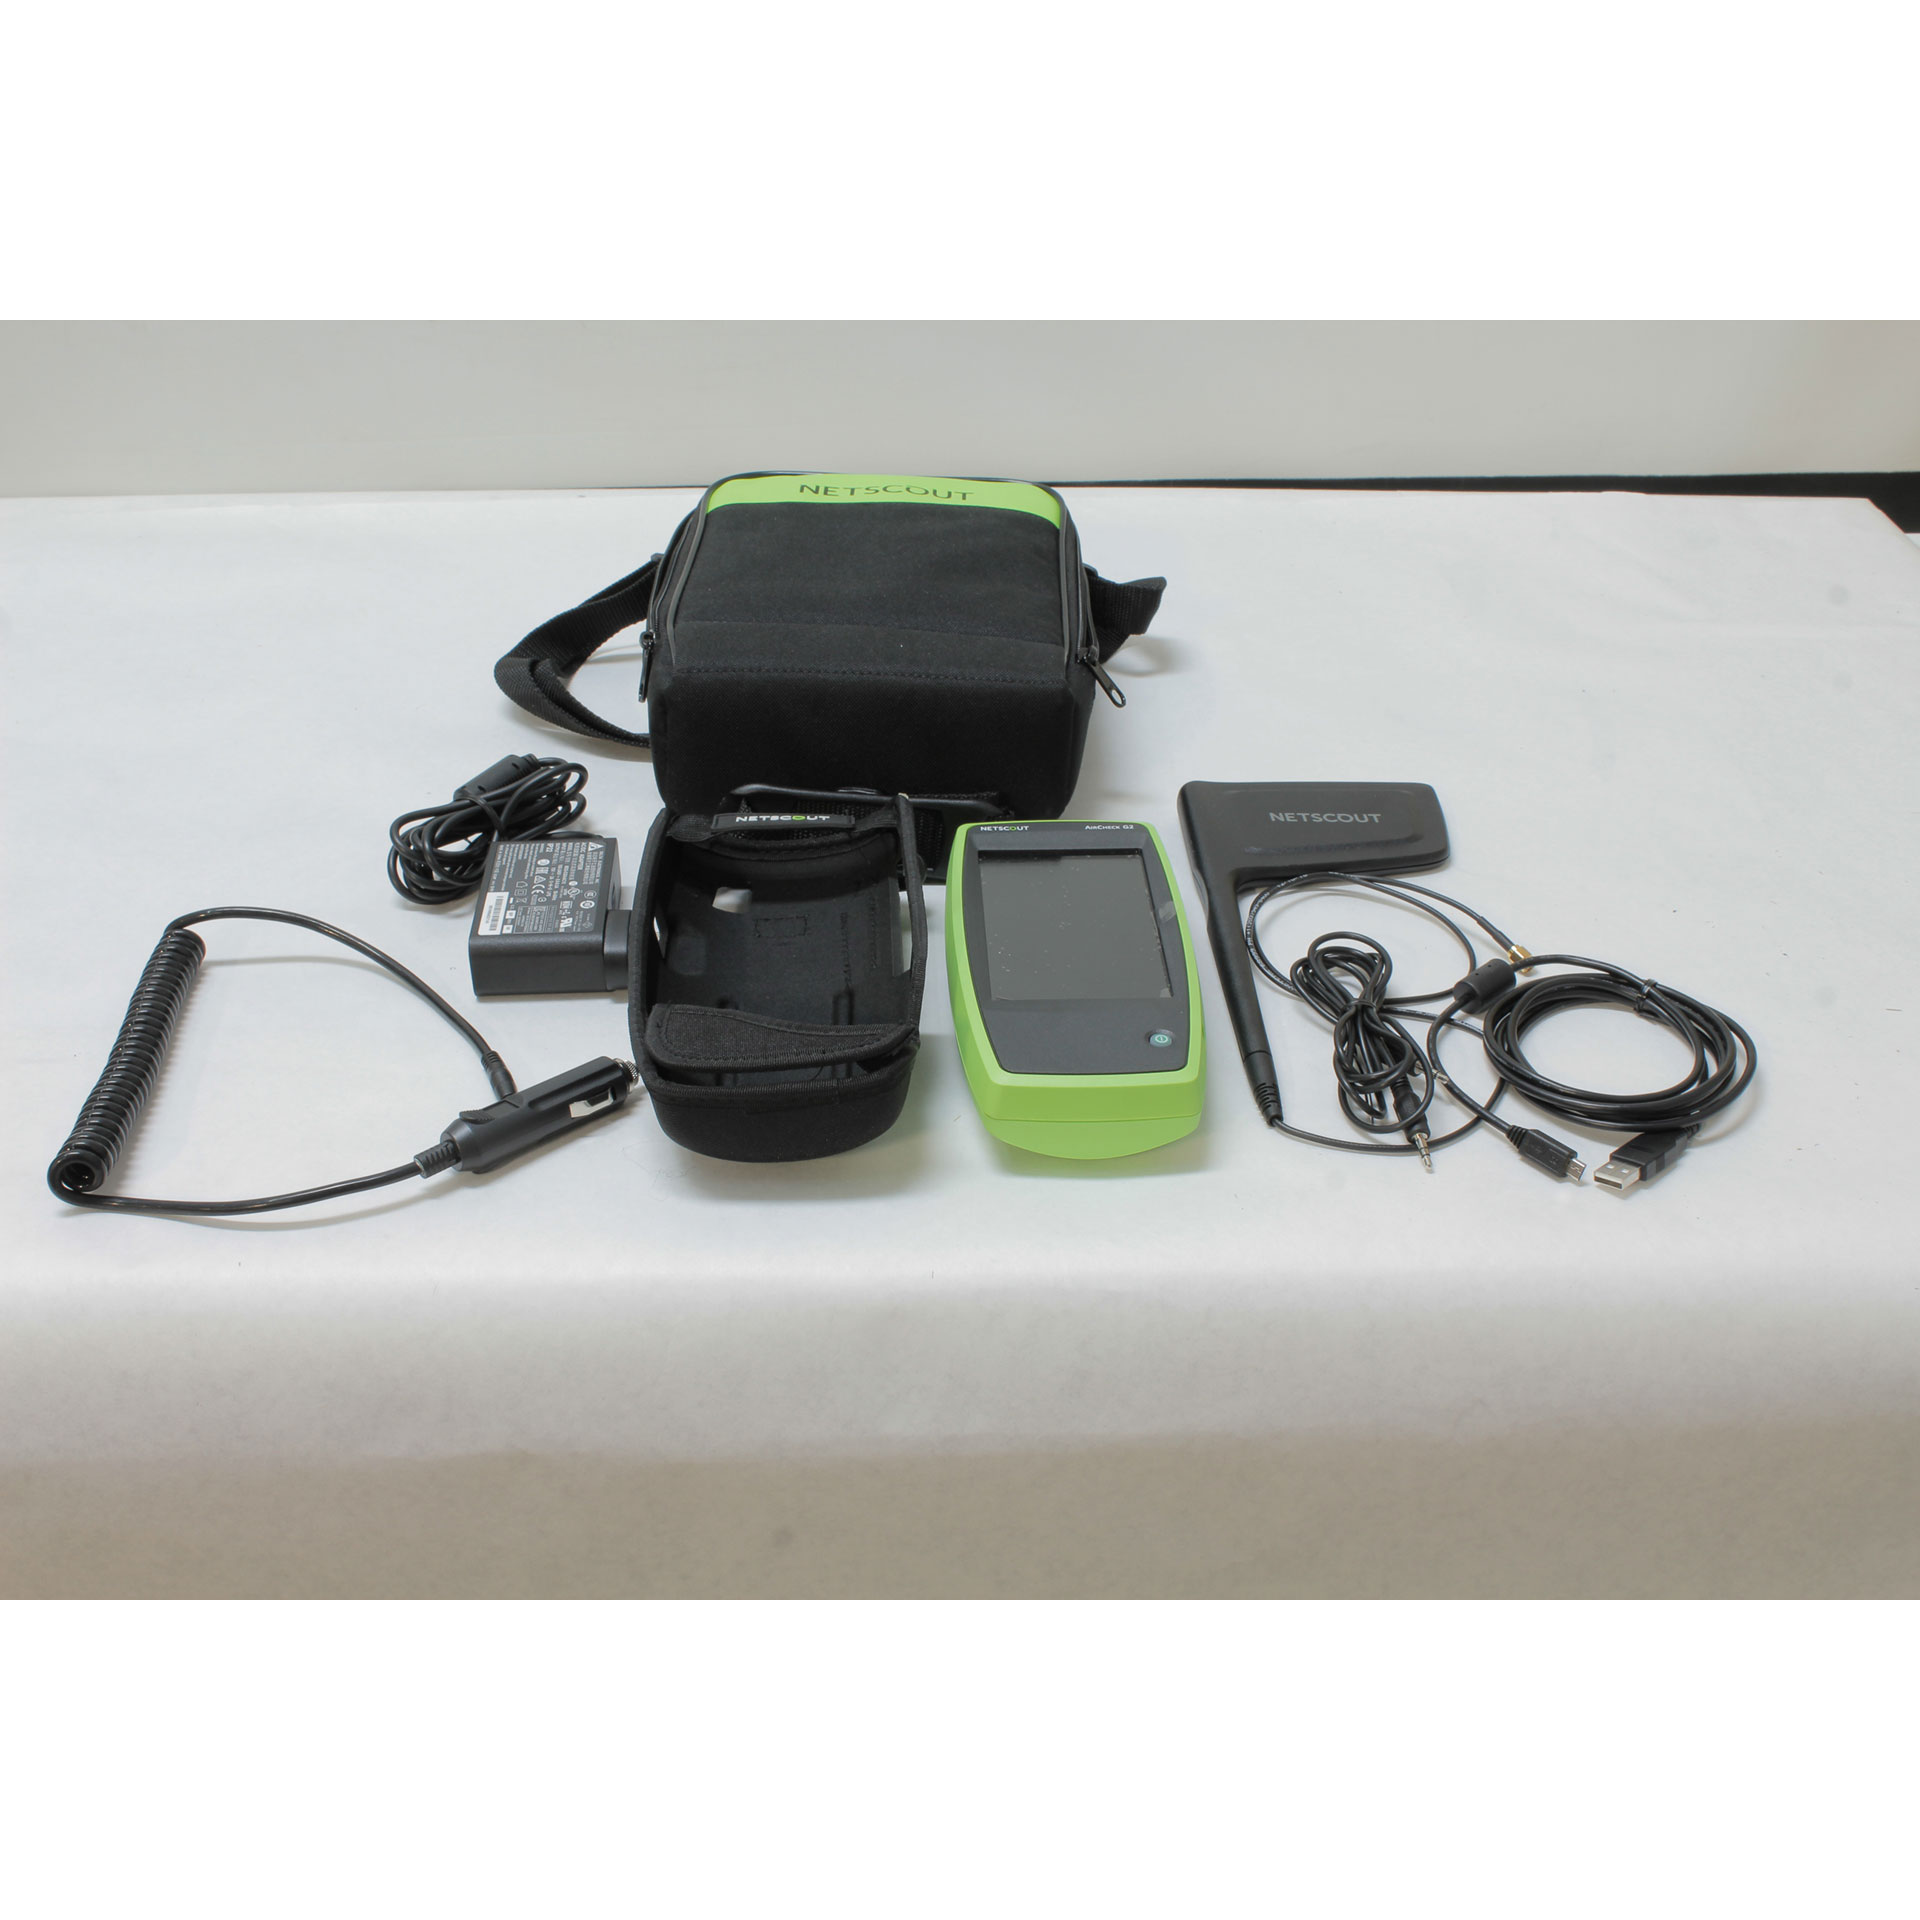 NETSCOUT AirCheck G2 Wireless Network Tester AIRCHECK-G2-KIT